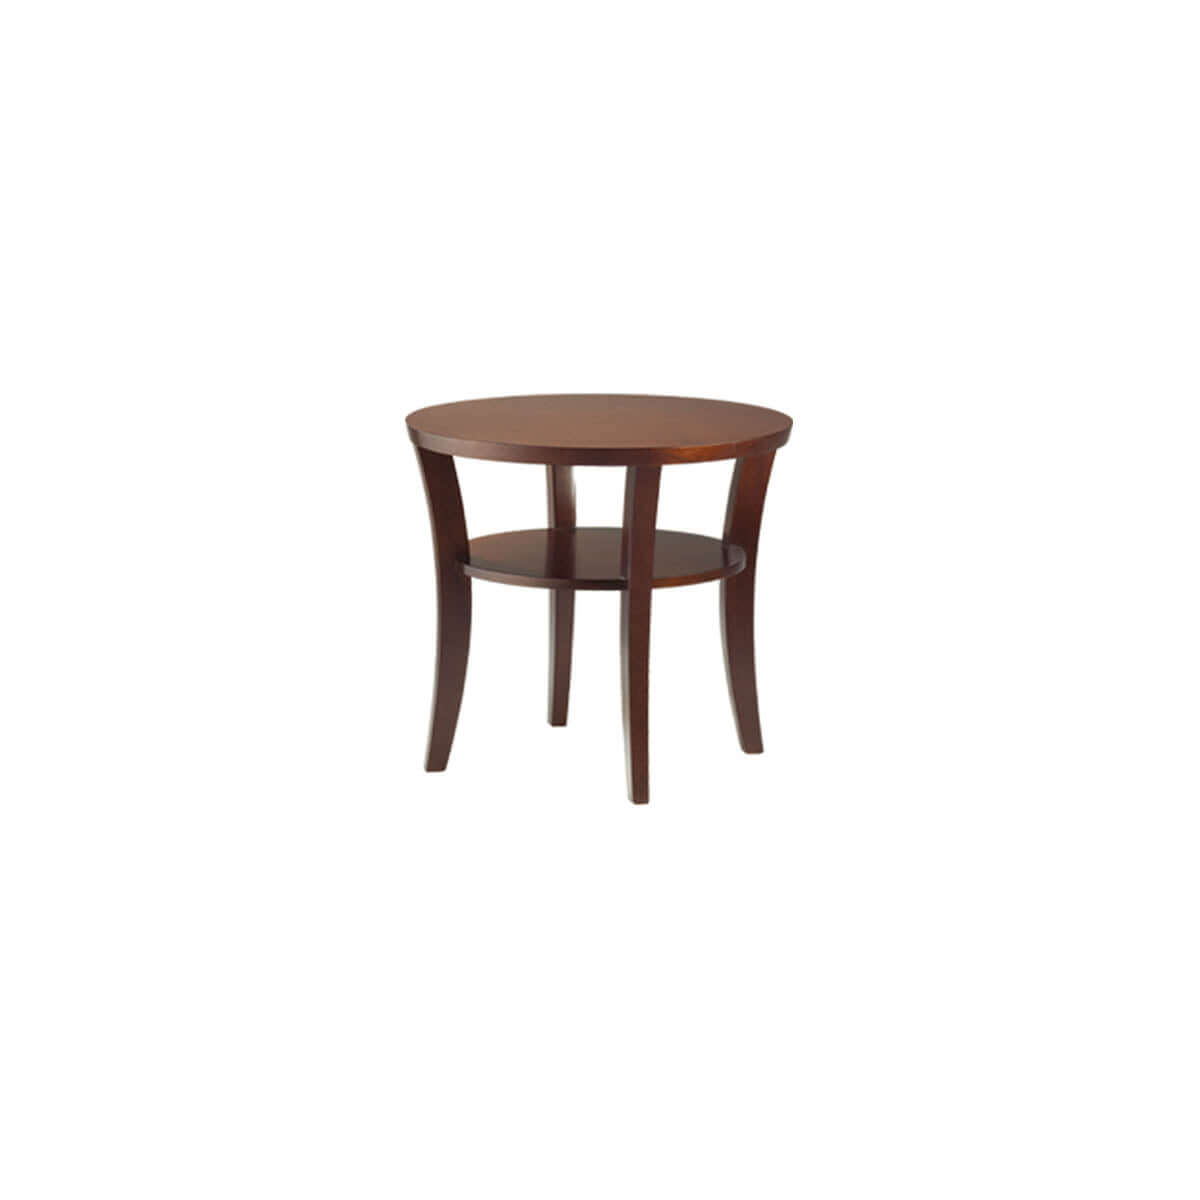 round side design tribeca top new simple qutb products dellis furniture table rose gold height with glass